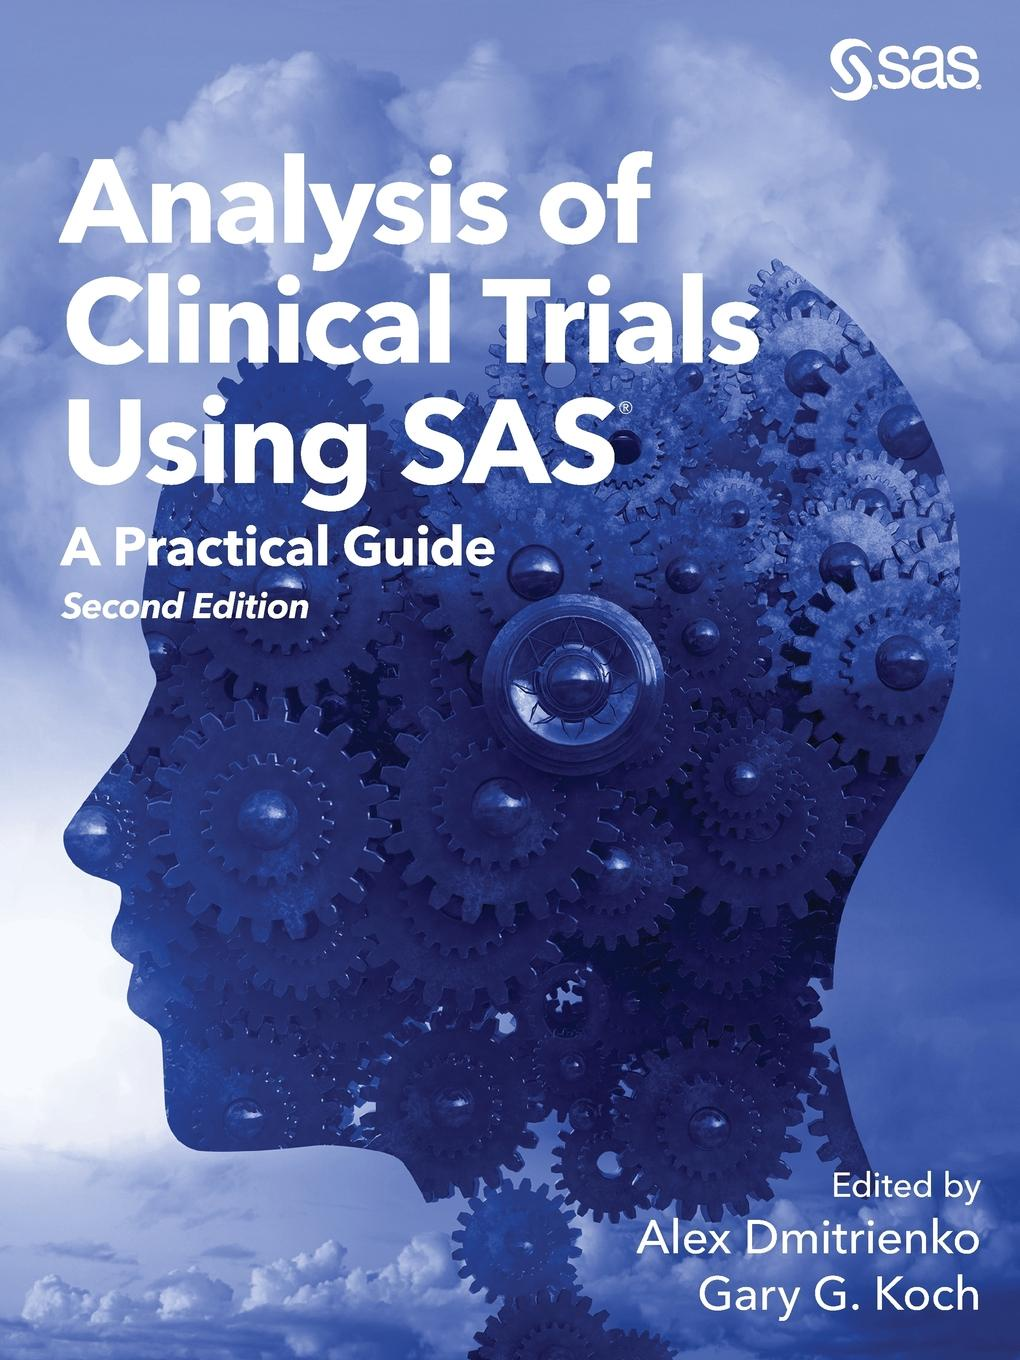 Analysis of Clinical Trials Using SAS. A Practical Guide, Second Edition alan johnson recommendations for design and analysis of earth structures using geosynthetic reinforcements ebgeo